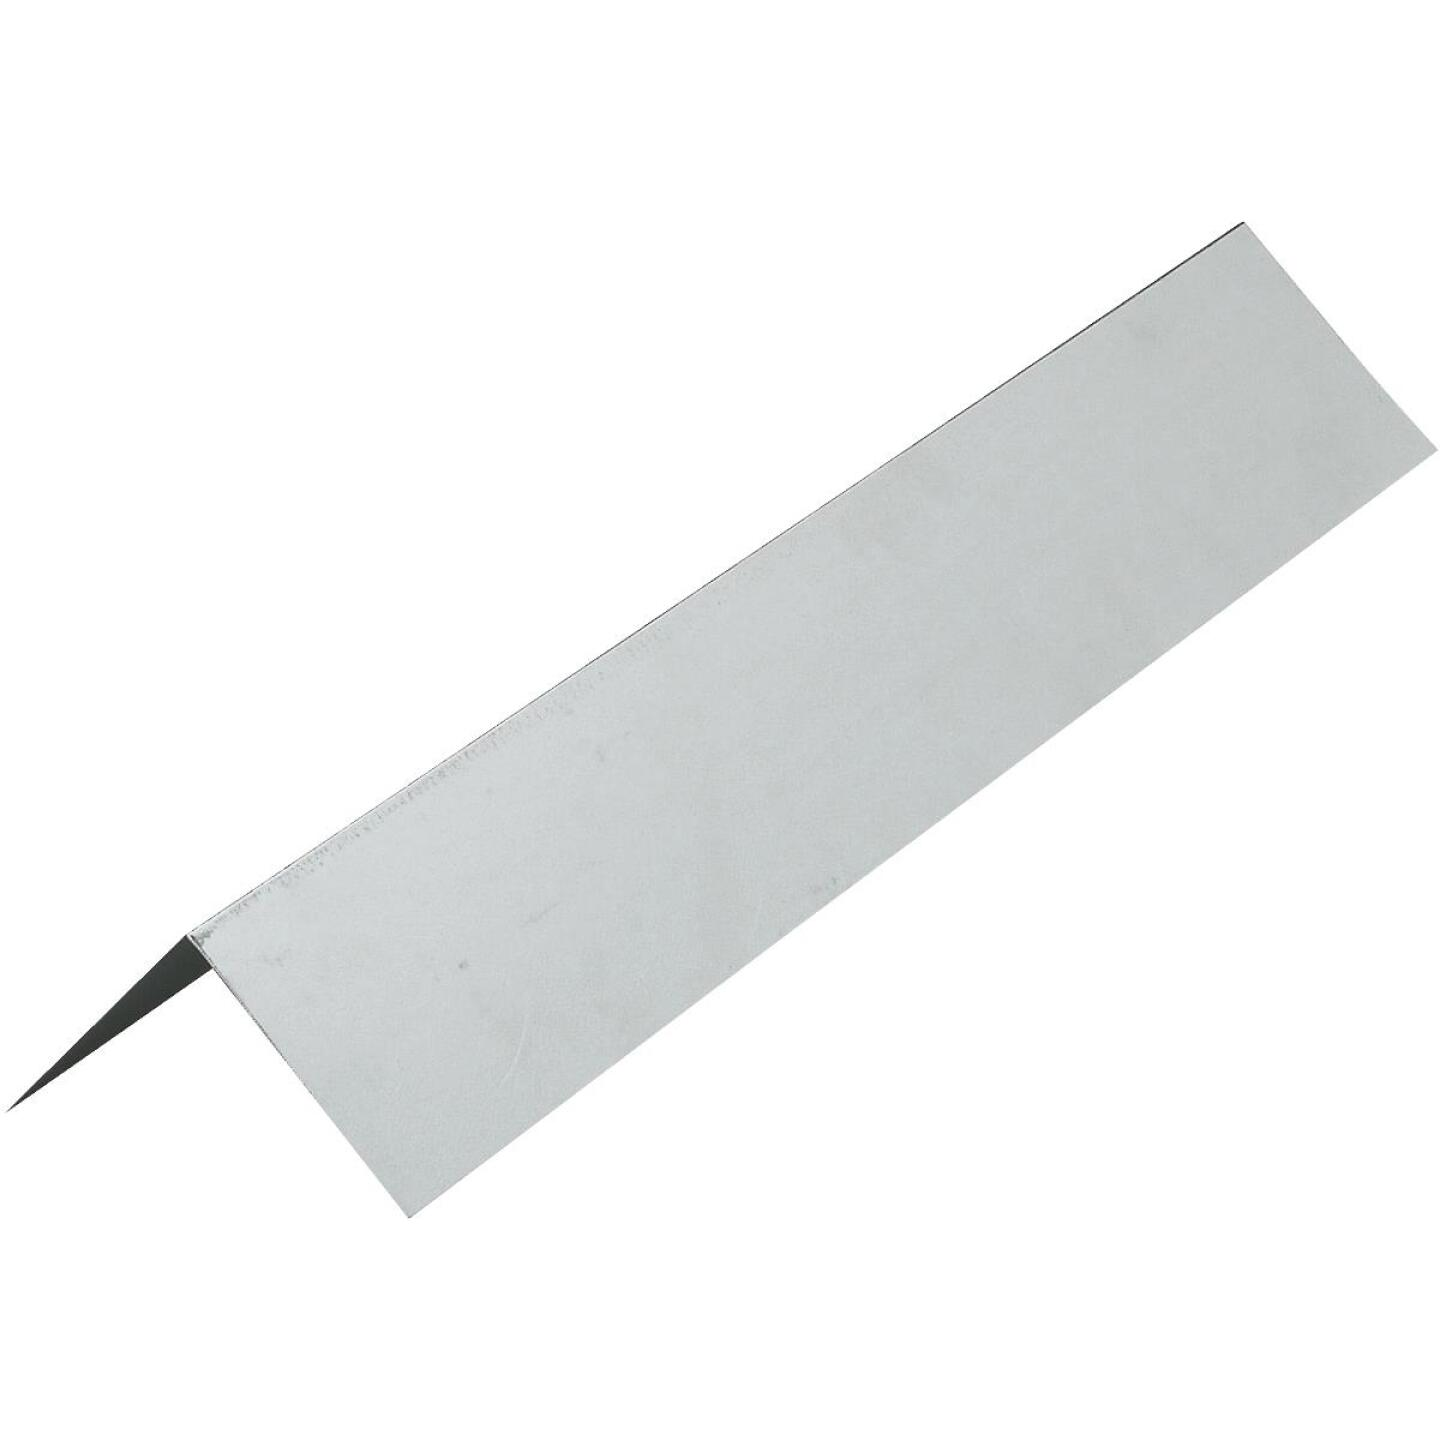 NorWesco A 3 In. X 3 In. Galvanized Steel Roof & Drip Edge Flashing Image 1